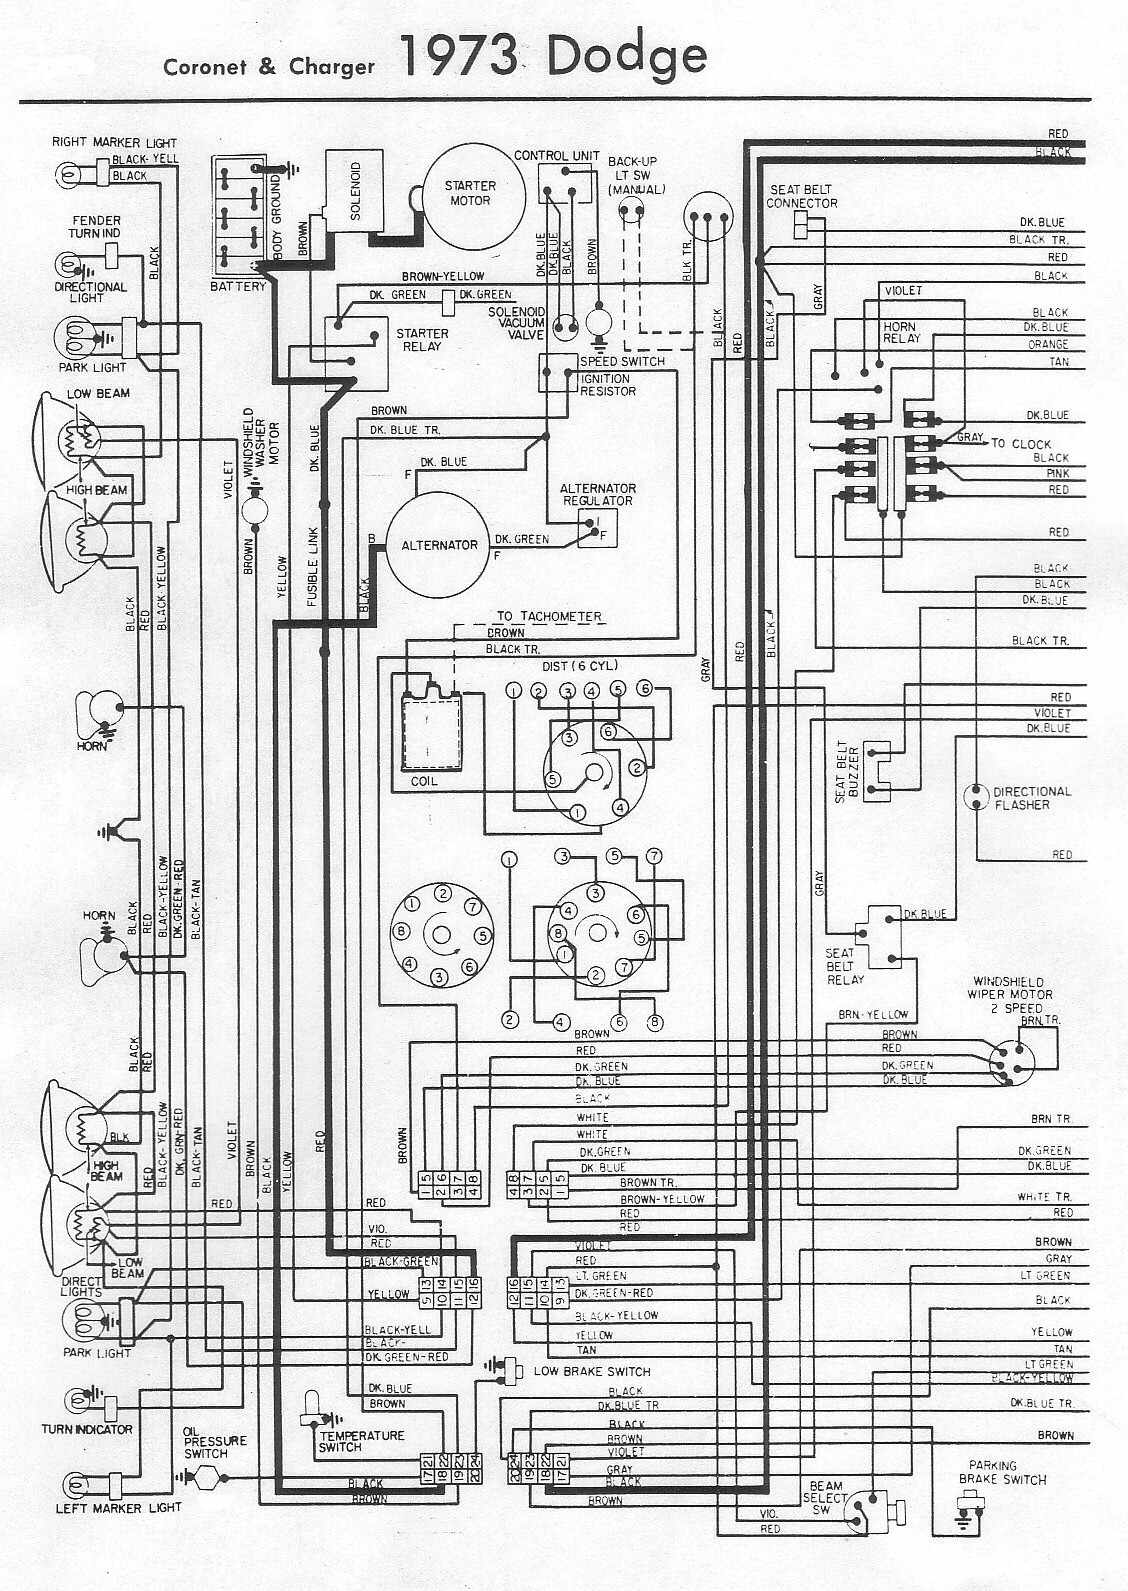 Citroen Relay Wiring Diagram Download : Citroen xsara fuse box layout ds wiring diagram